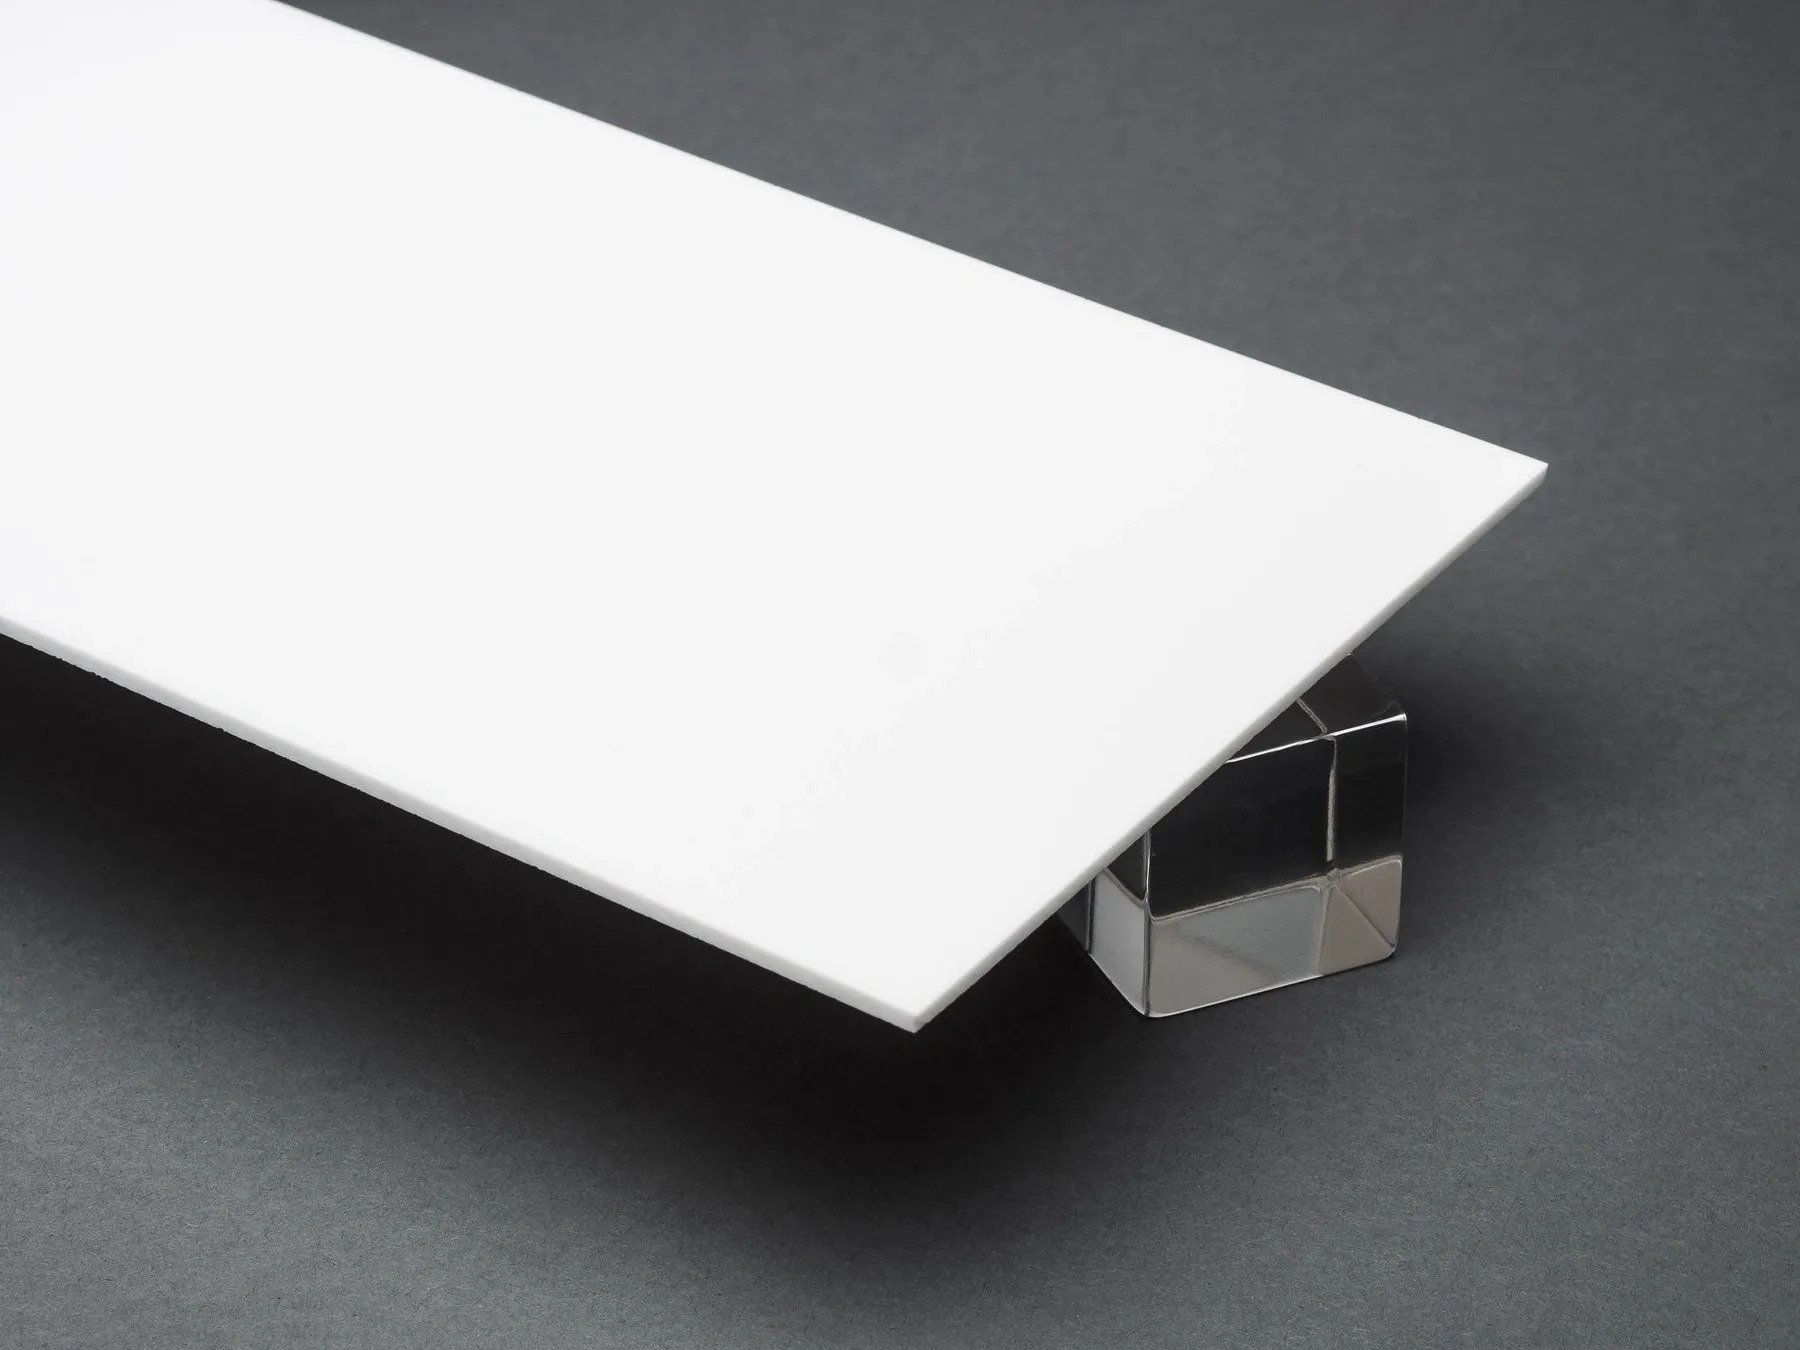 Acrylic Sheet 1 8 White Plexiglas Plastic Diy Craft Etsy In 2020 Acrylic Sheets White Acrylic Sheet Plastic Sheets